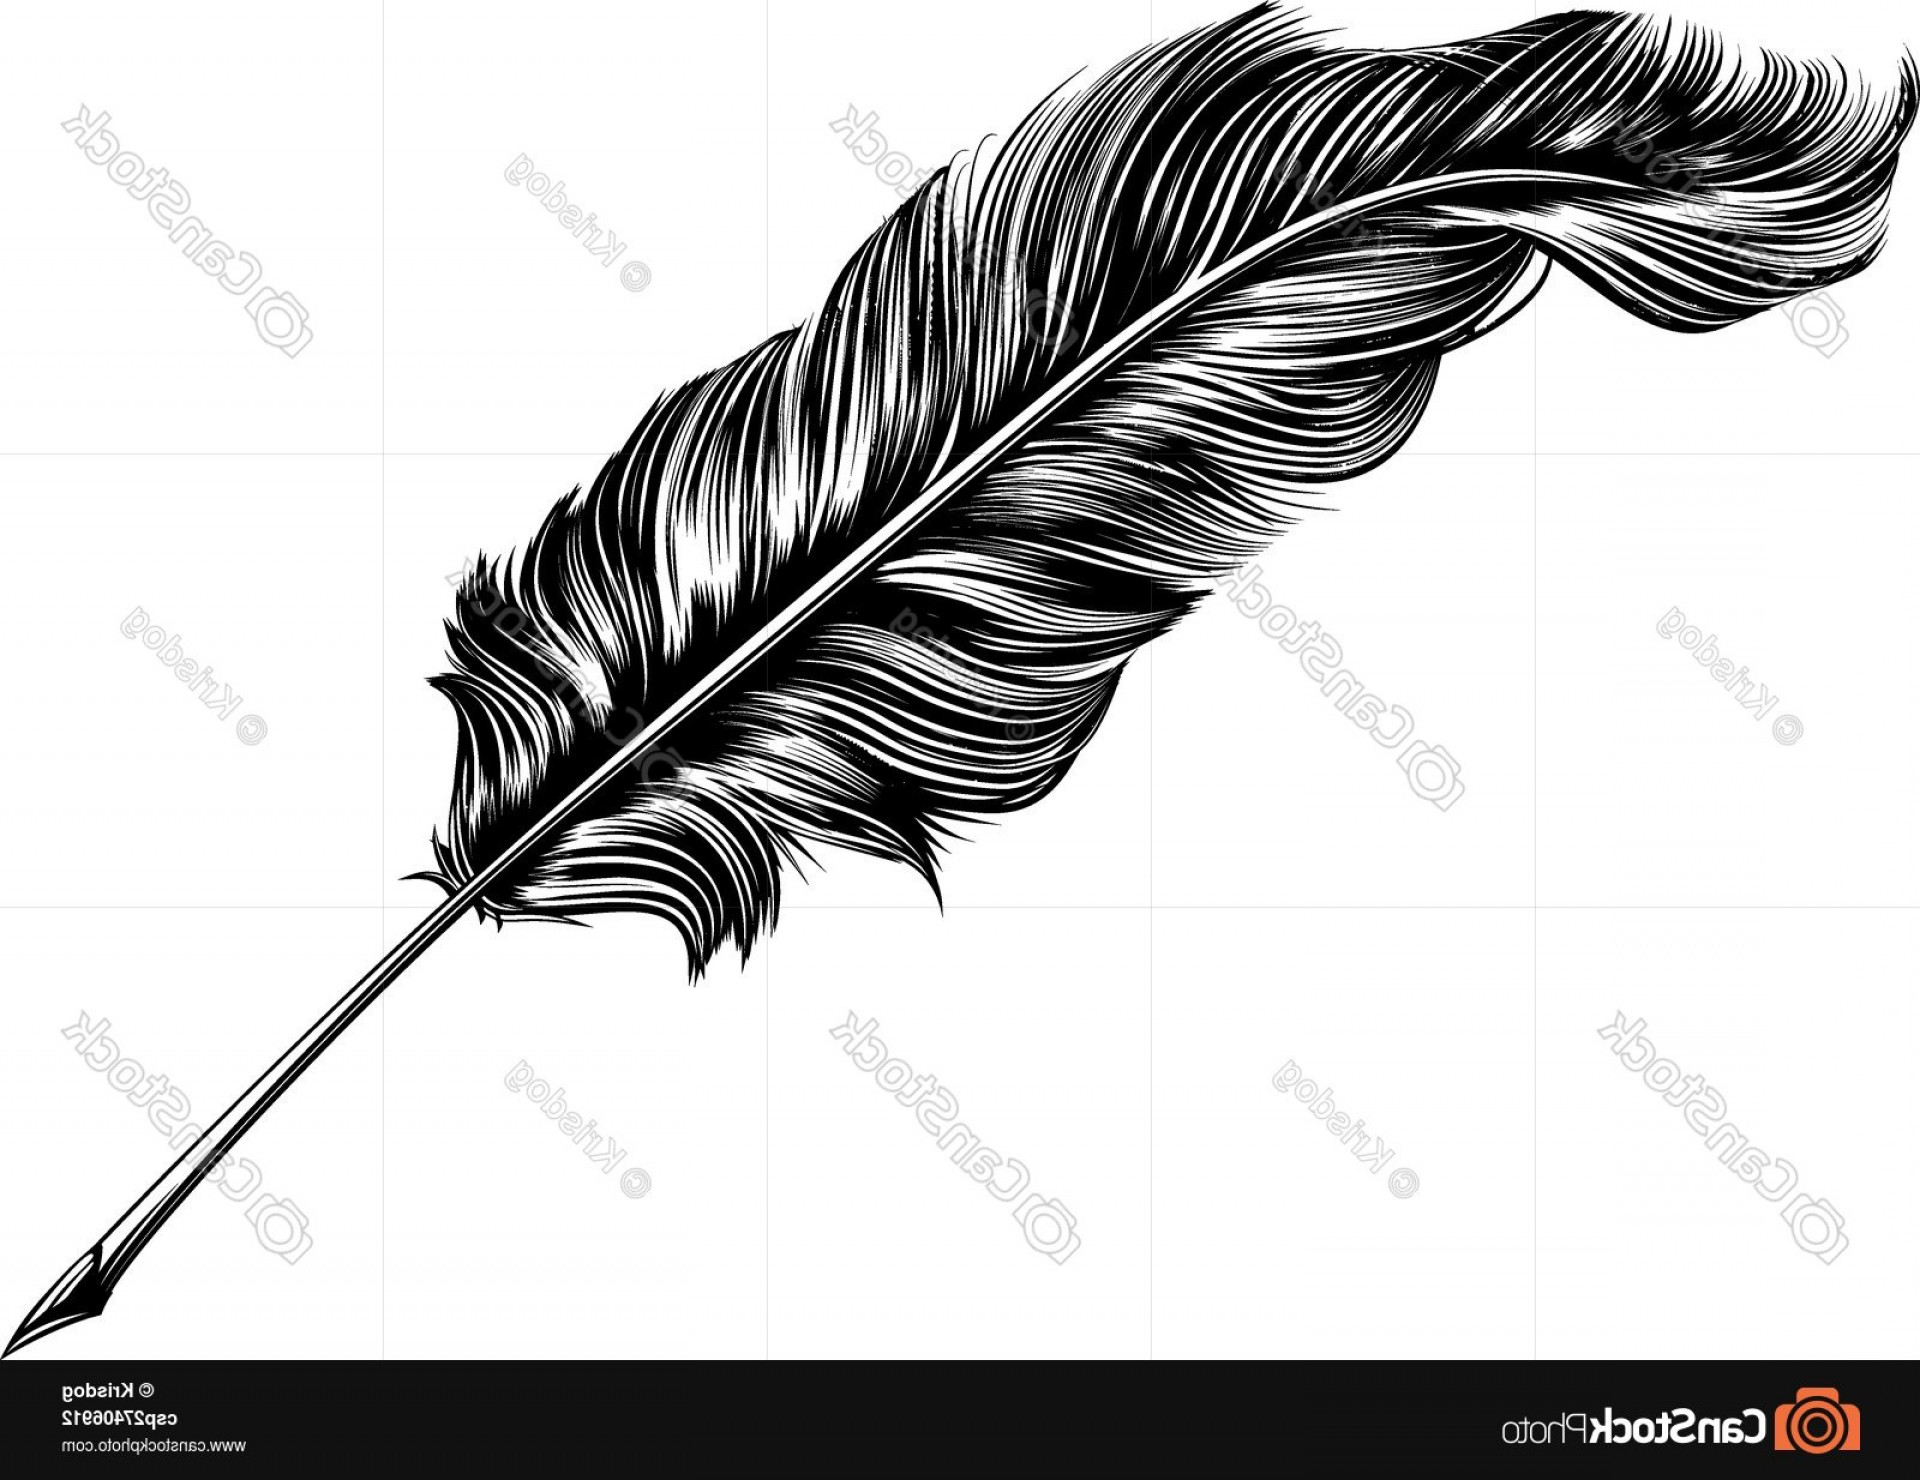 Quill Pen Vector: Vintage Feather Quill Pen Illustration